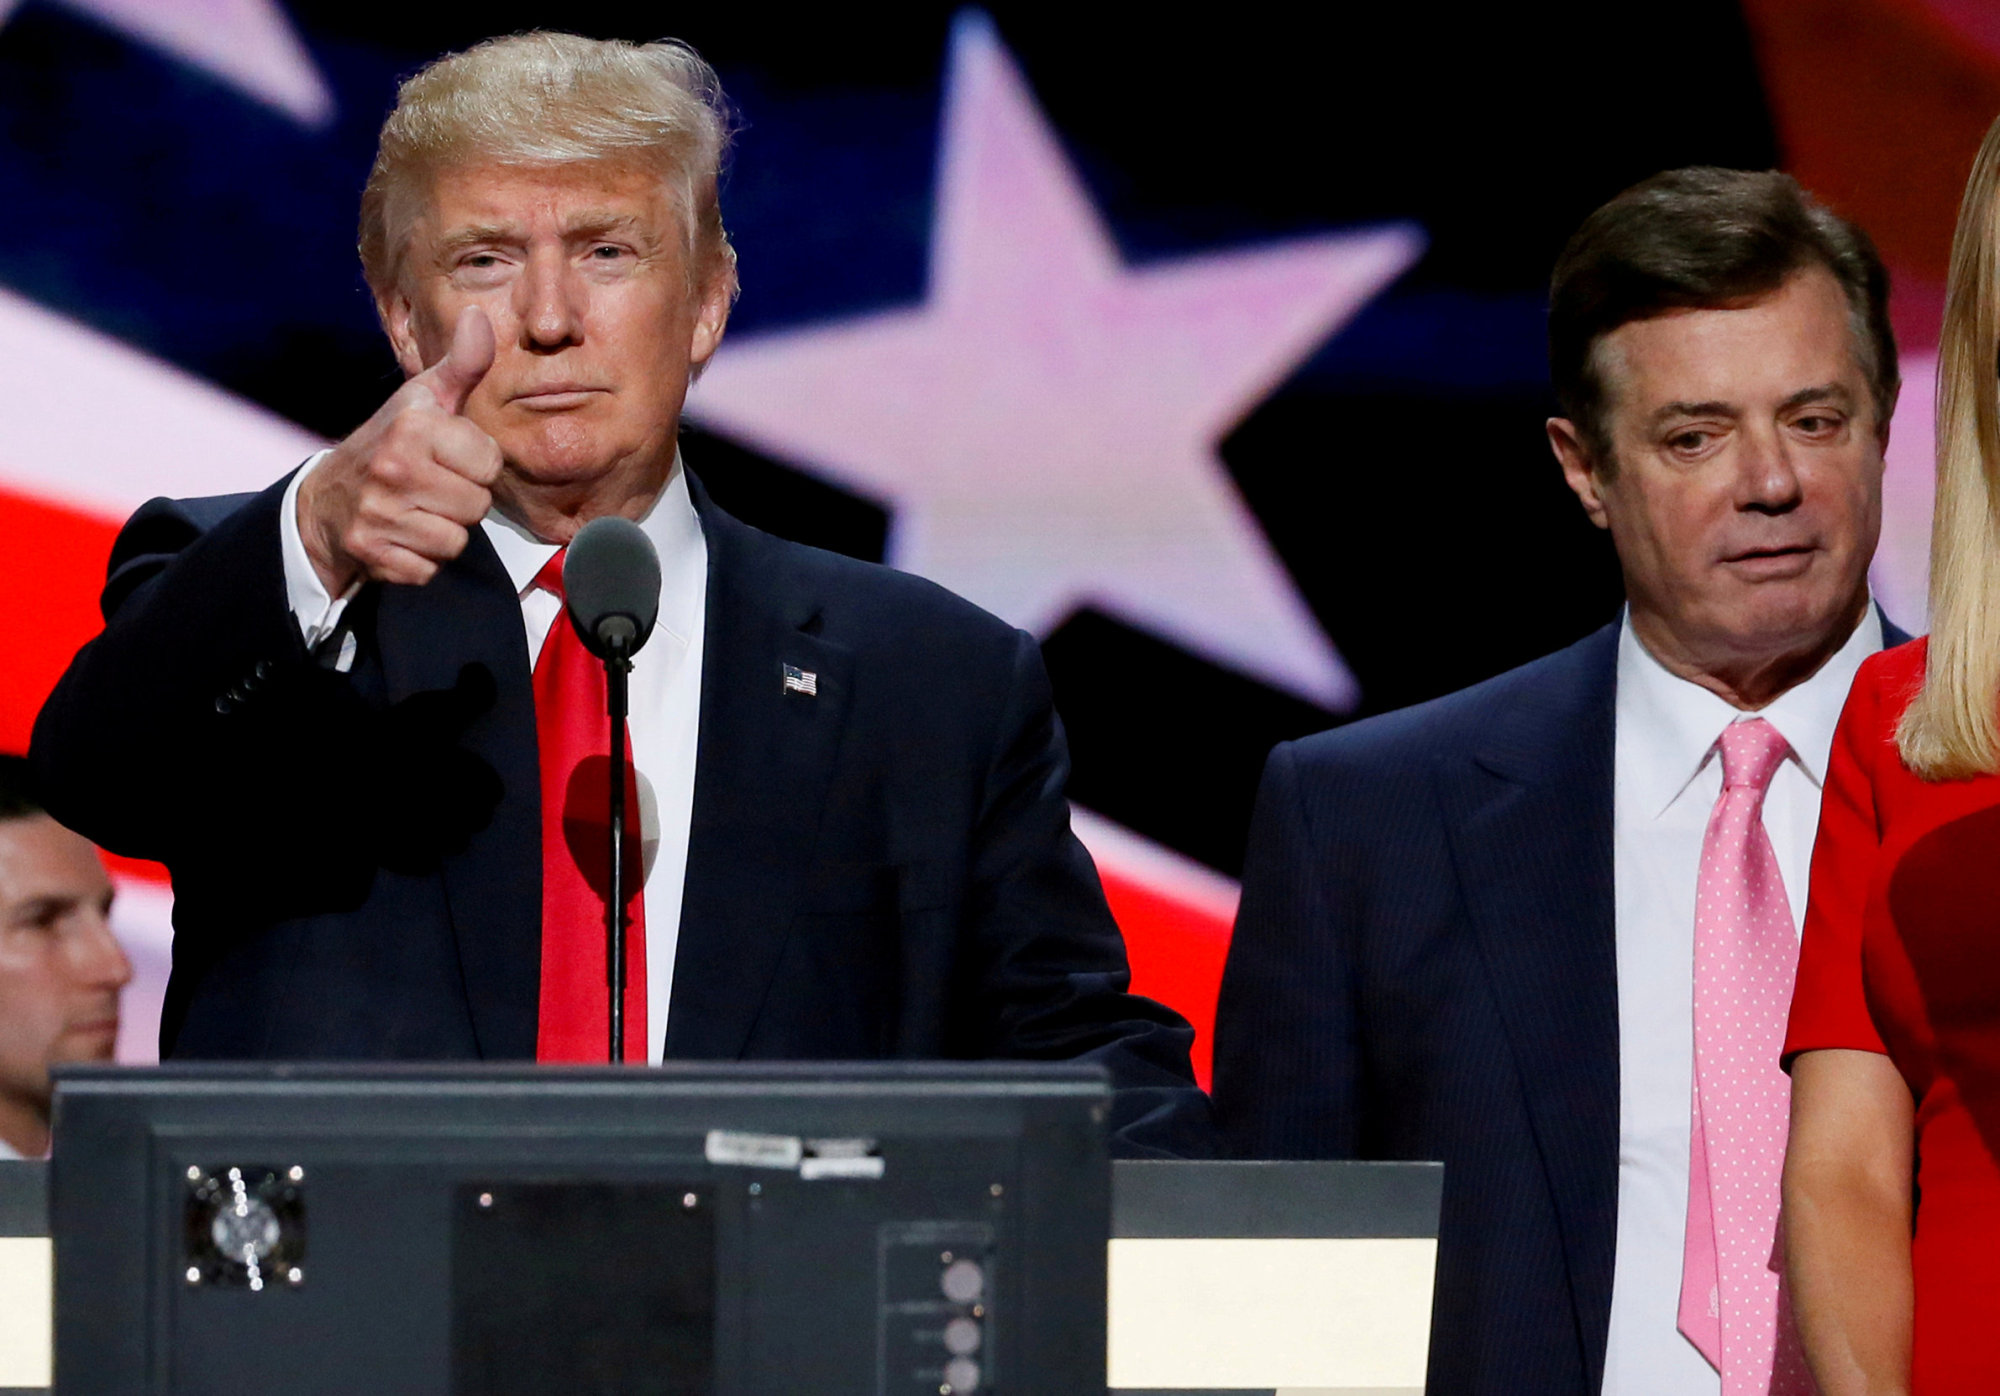 Then-Republican presidential nominee Donald Trump gives a thumbs up as his campaign manager, Paul Manafort, looks on during Trump's walk-through at the Republican National Convention in Cleveland in 2016. | REUTERS